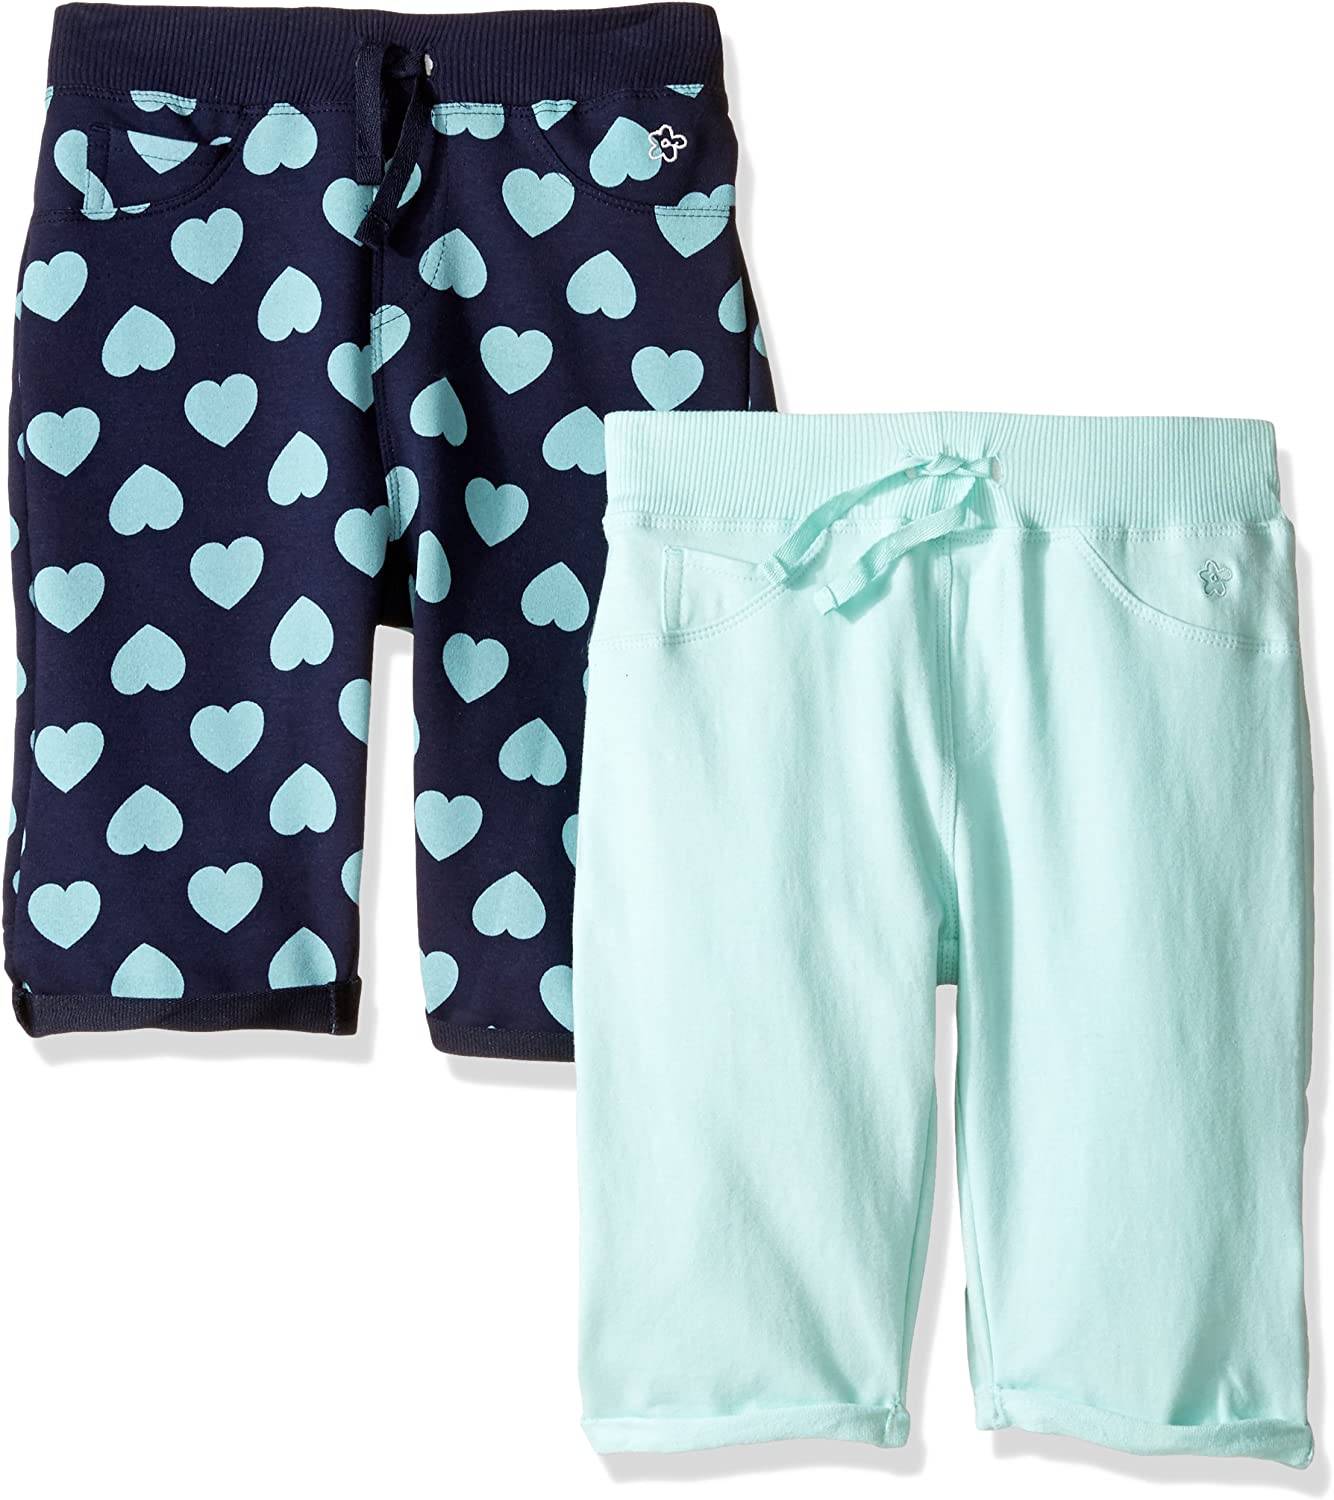 Limited Too Baby Girls' 2 Pack Courier shipping free Short Attention brand